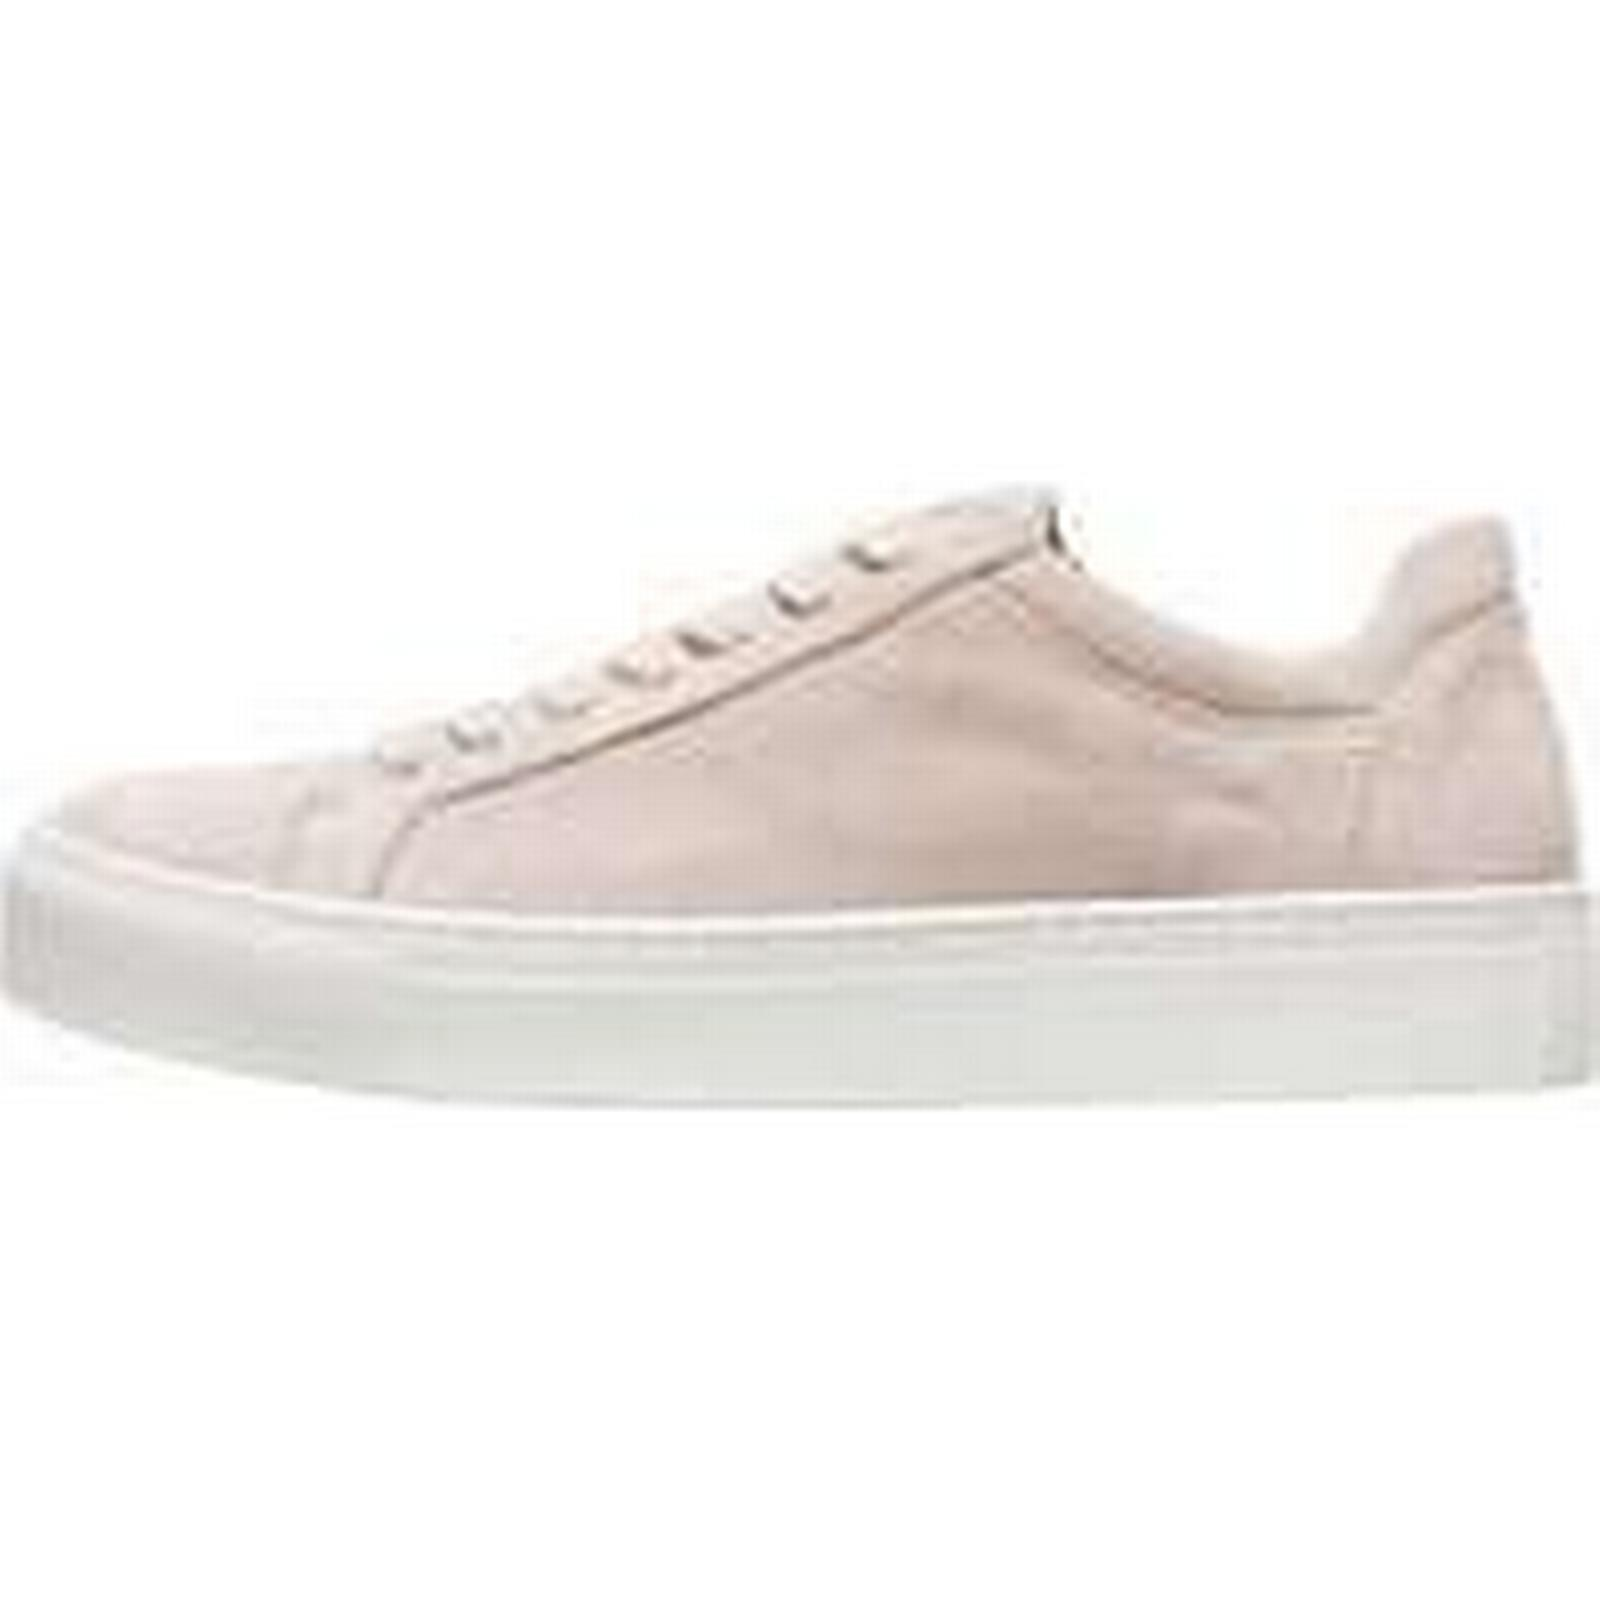 SELECTED Suede - Women Trainers Women - Pink (41) 10a975